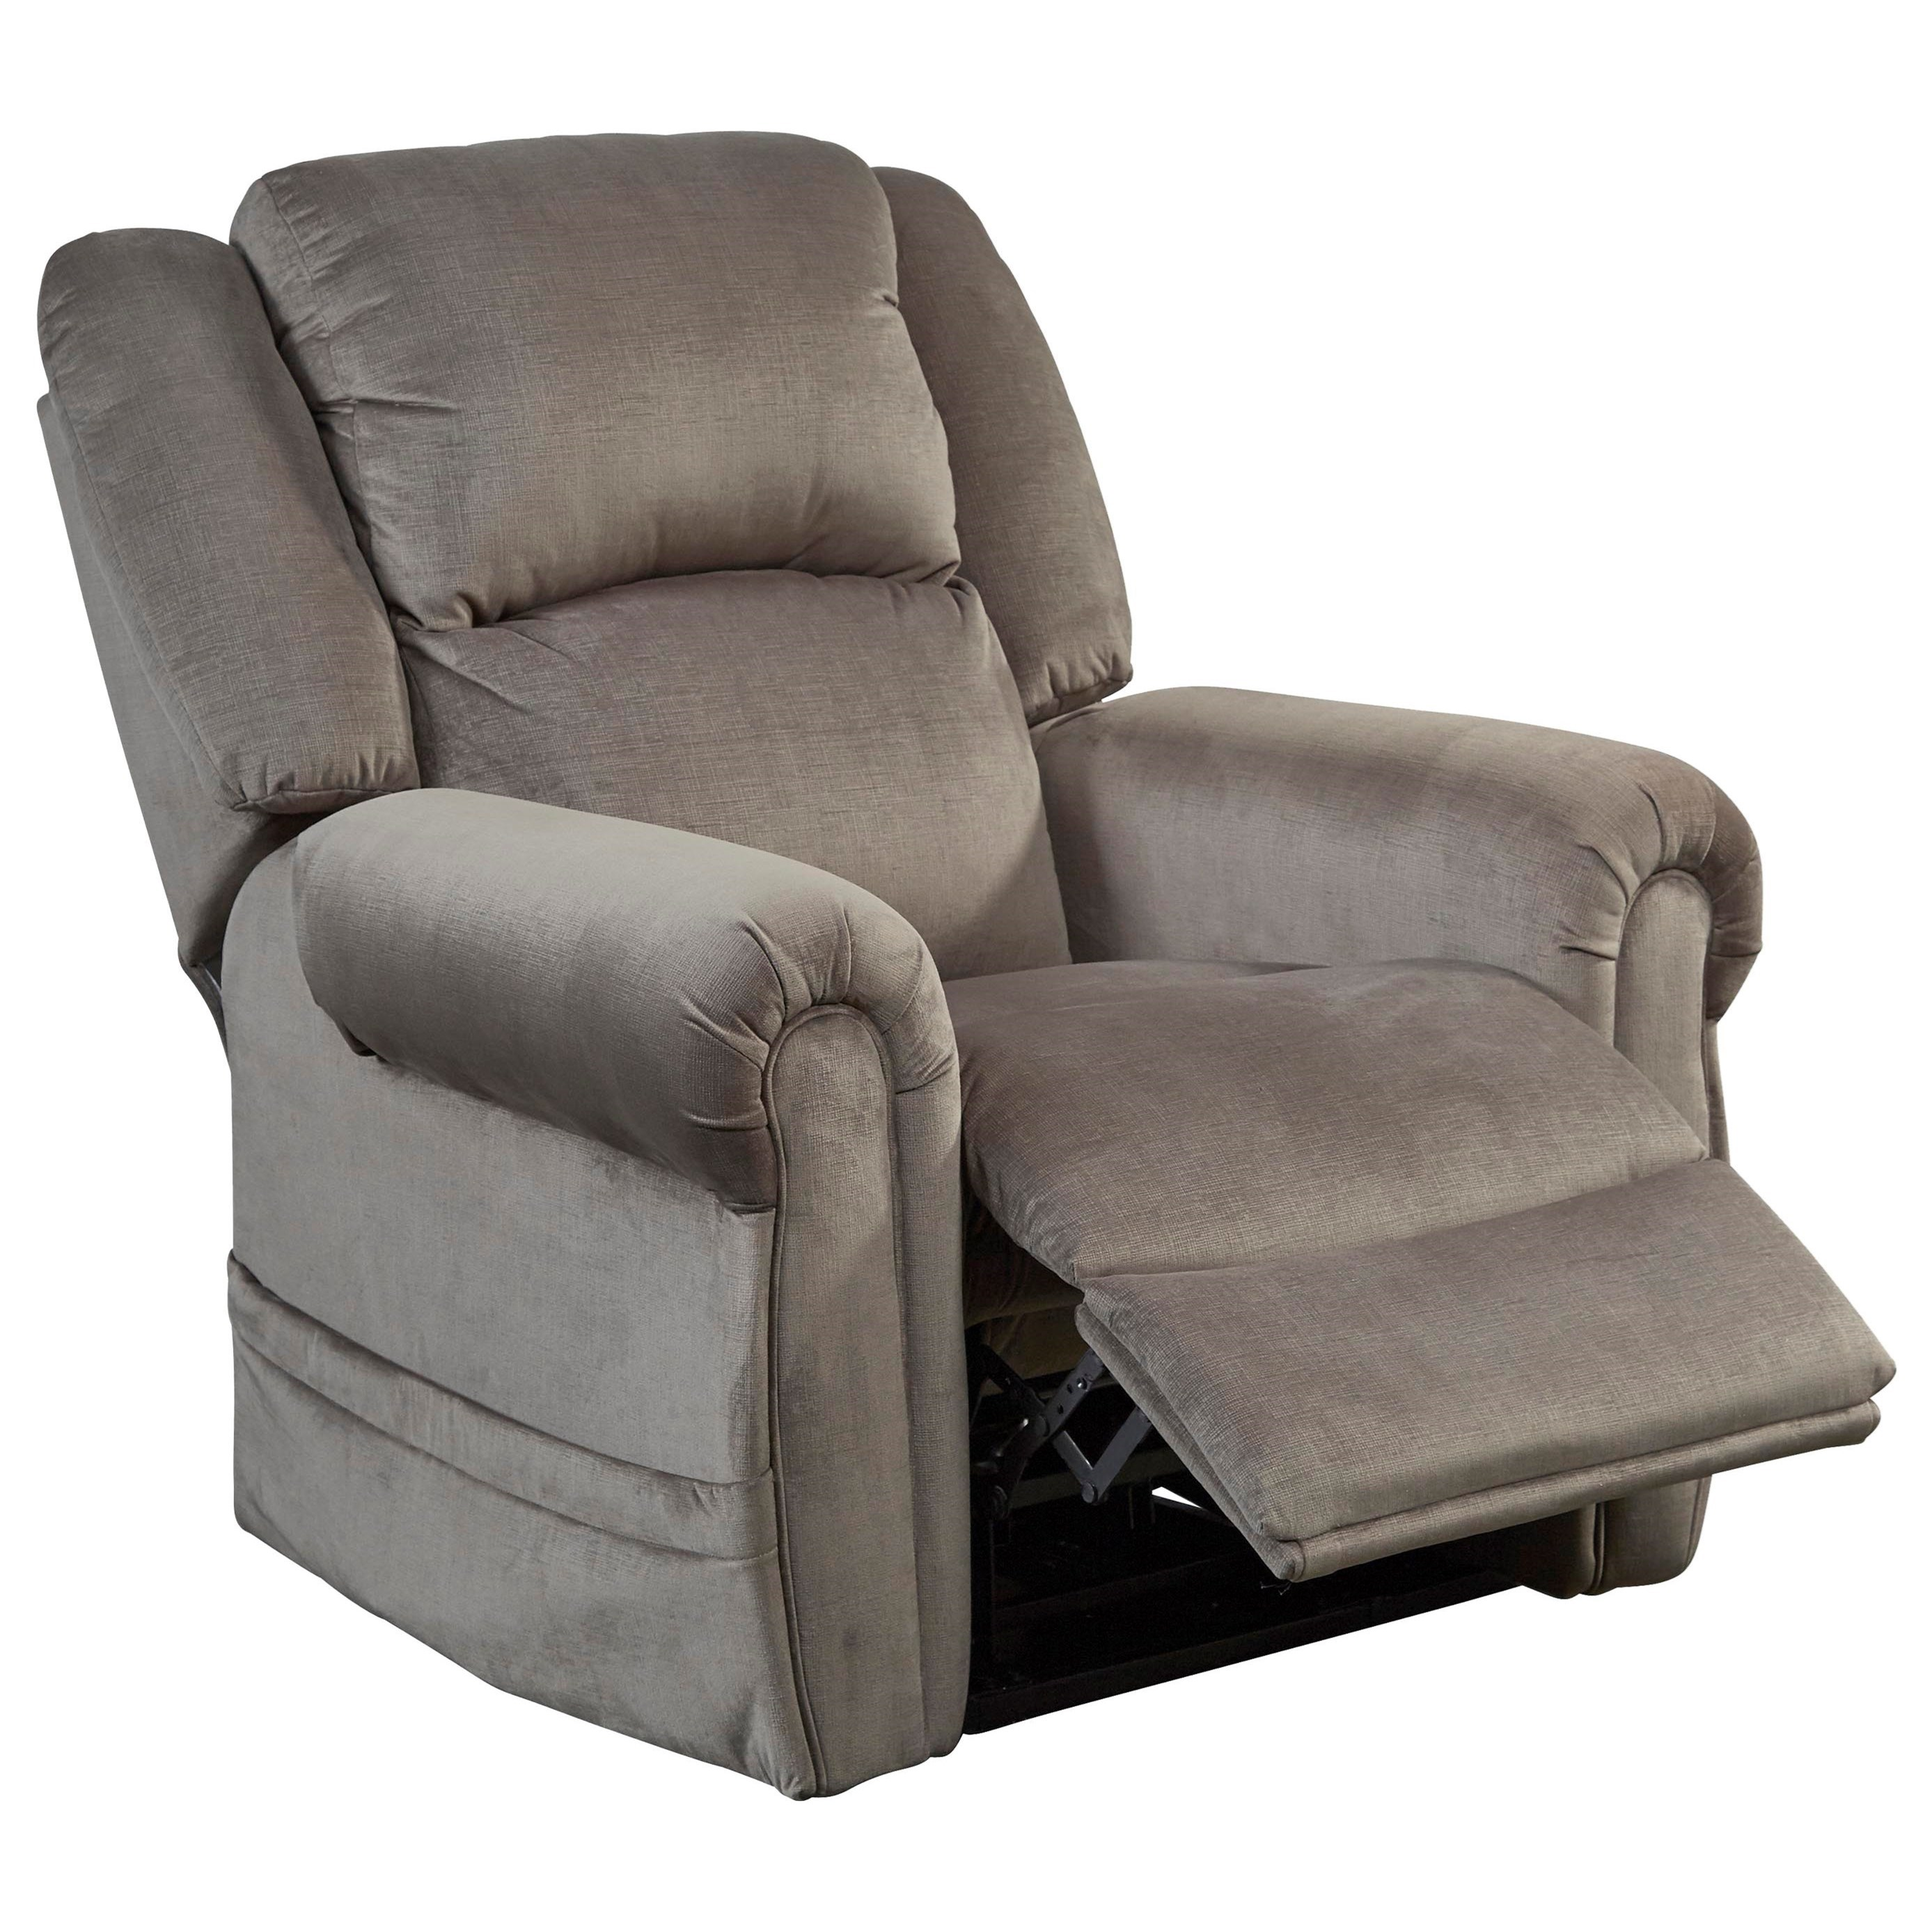 Catnapper Lift Chairs Catnapper Motion Chairs And Recliners Spencer Power Lift